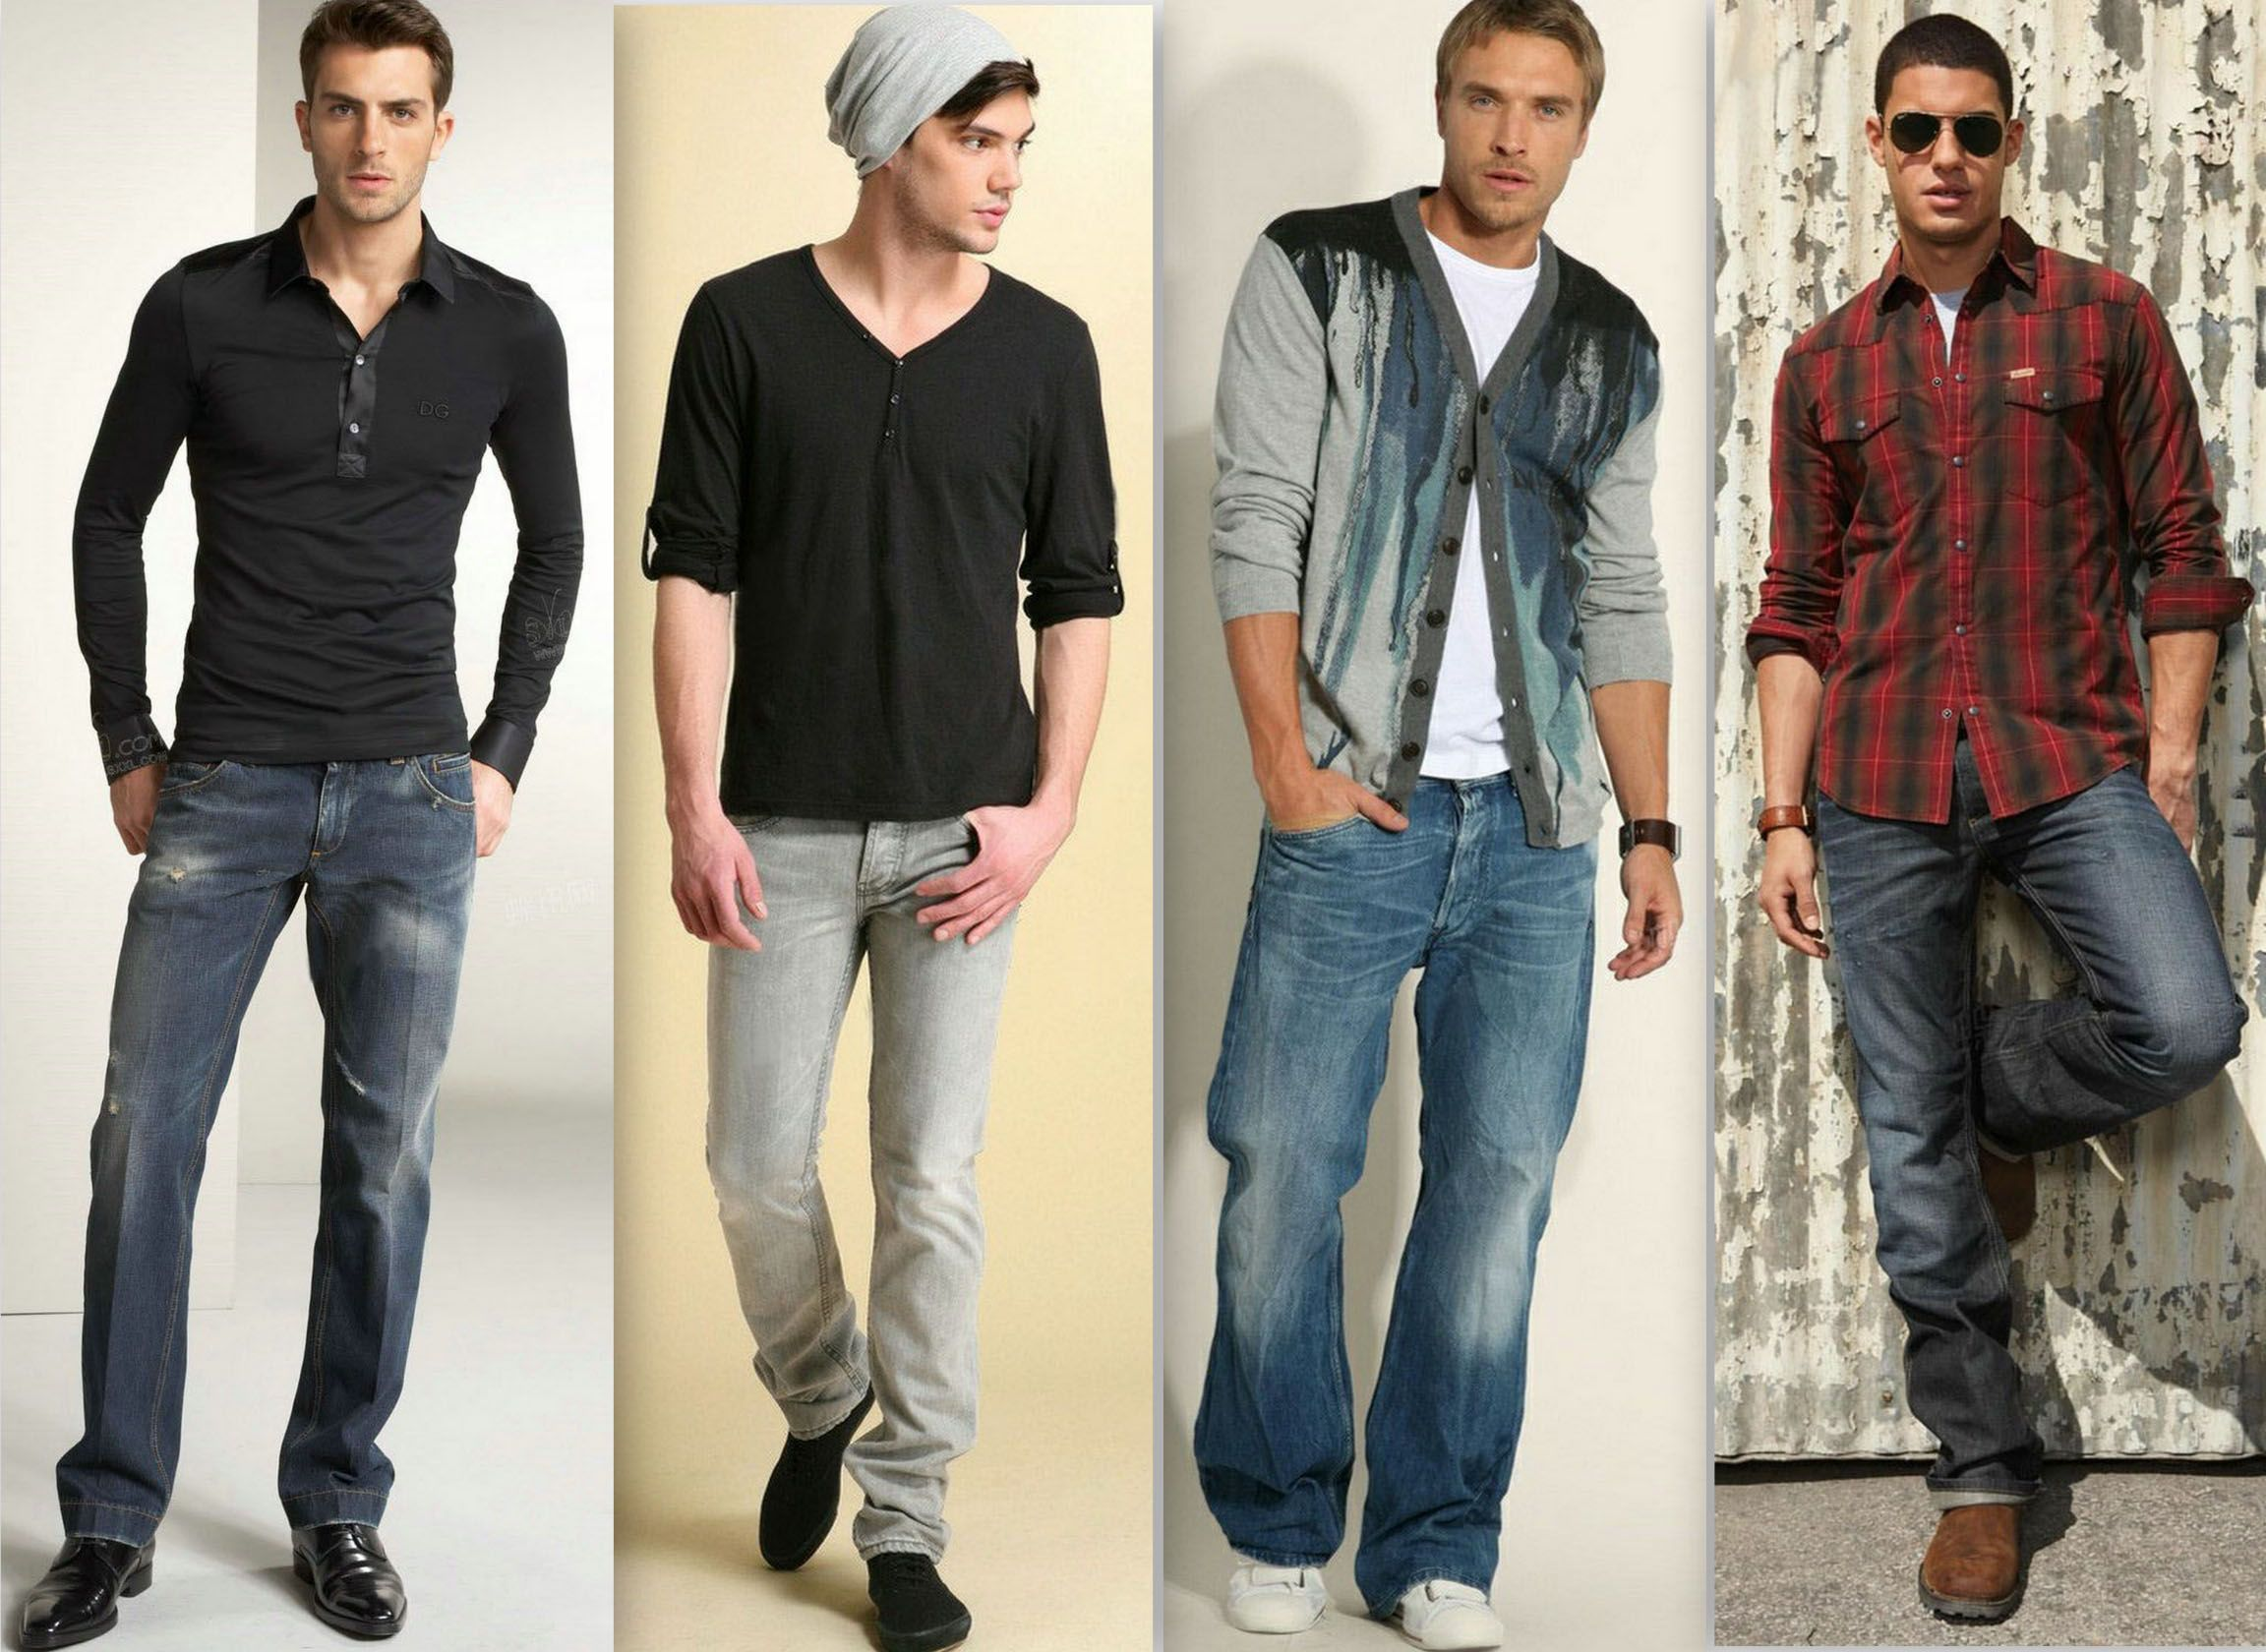 Collection Jeans Fashion Men Pictures - Get Your Fashion Style